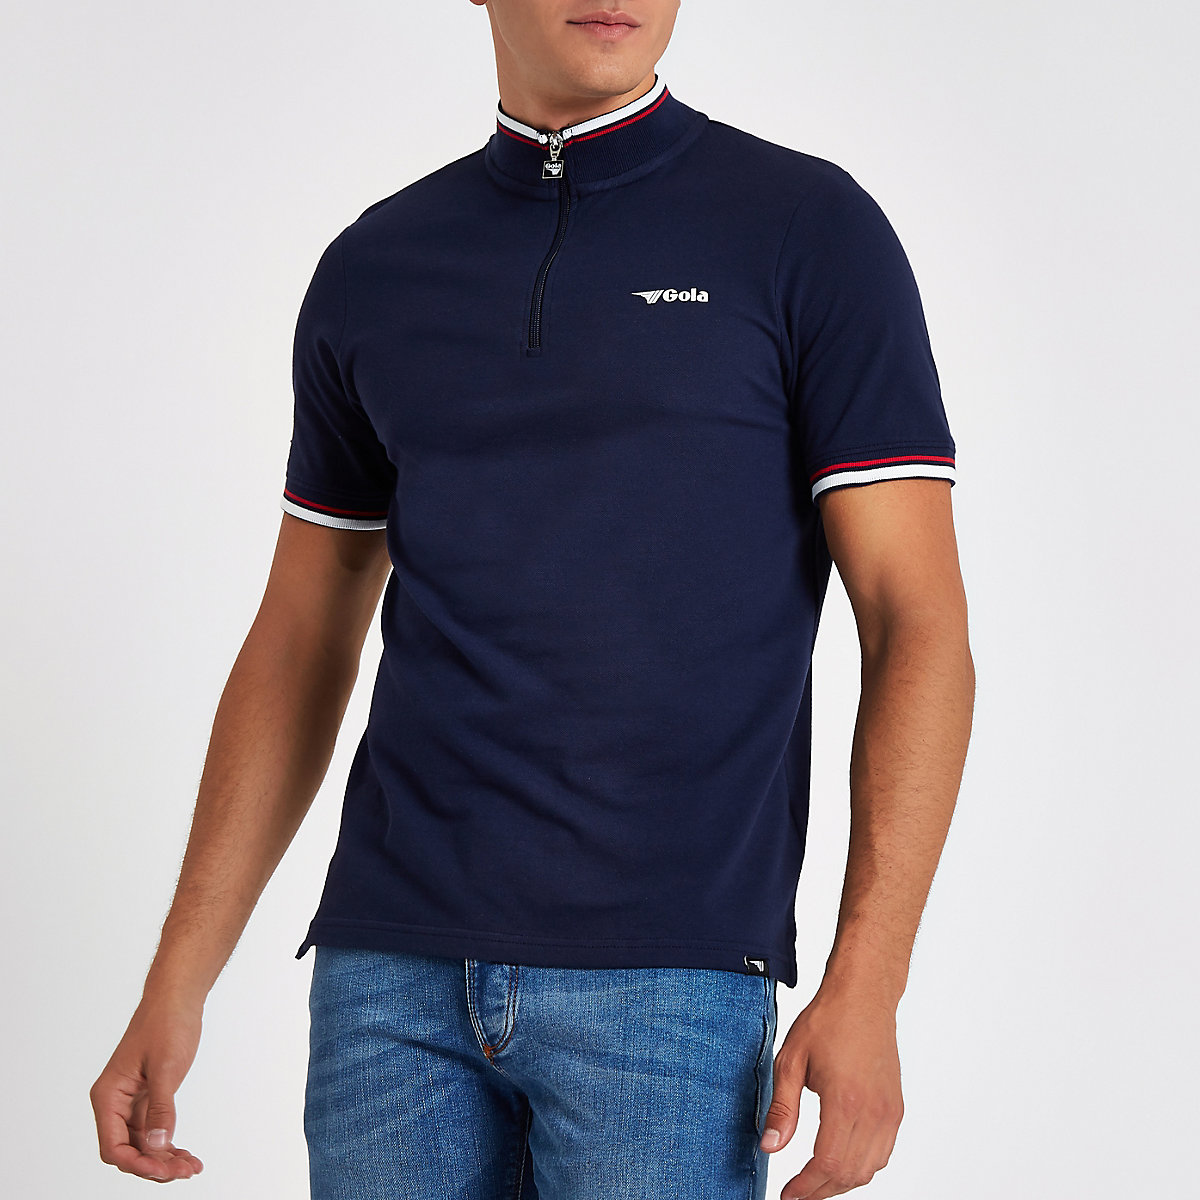 Gola navy funnel neck zip front T-shirt